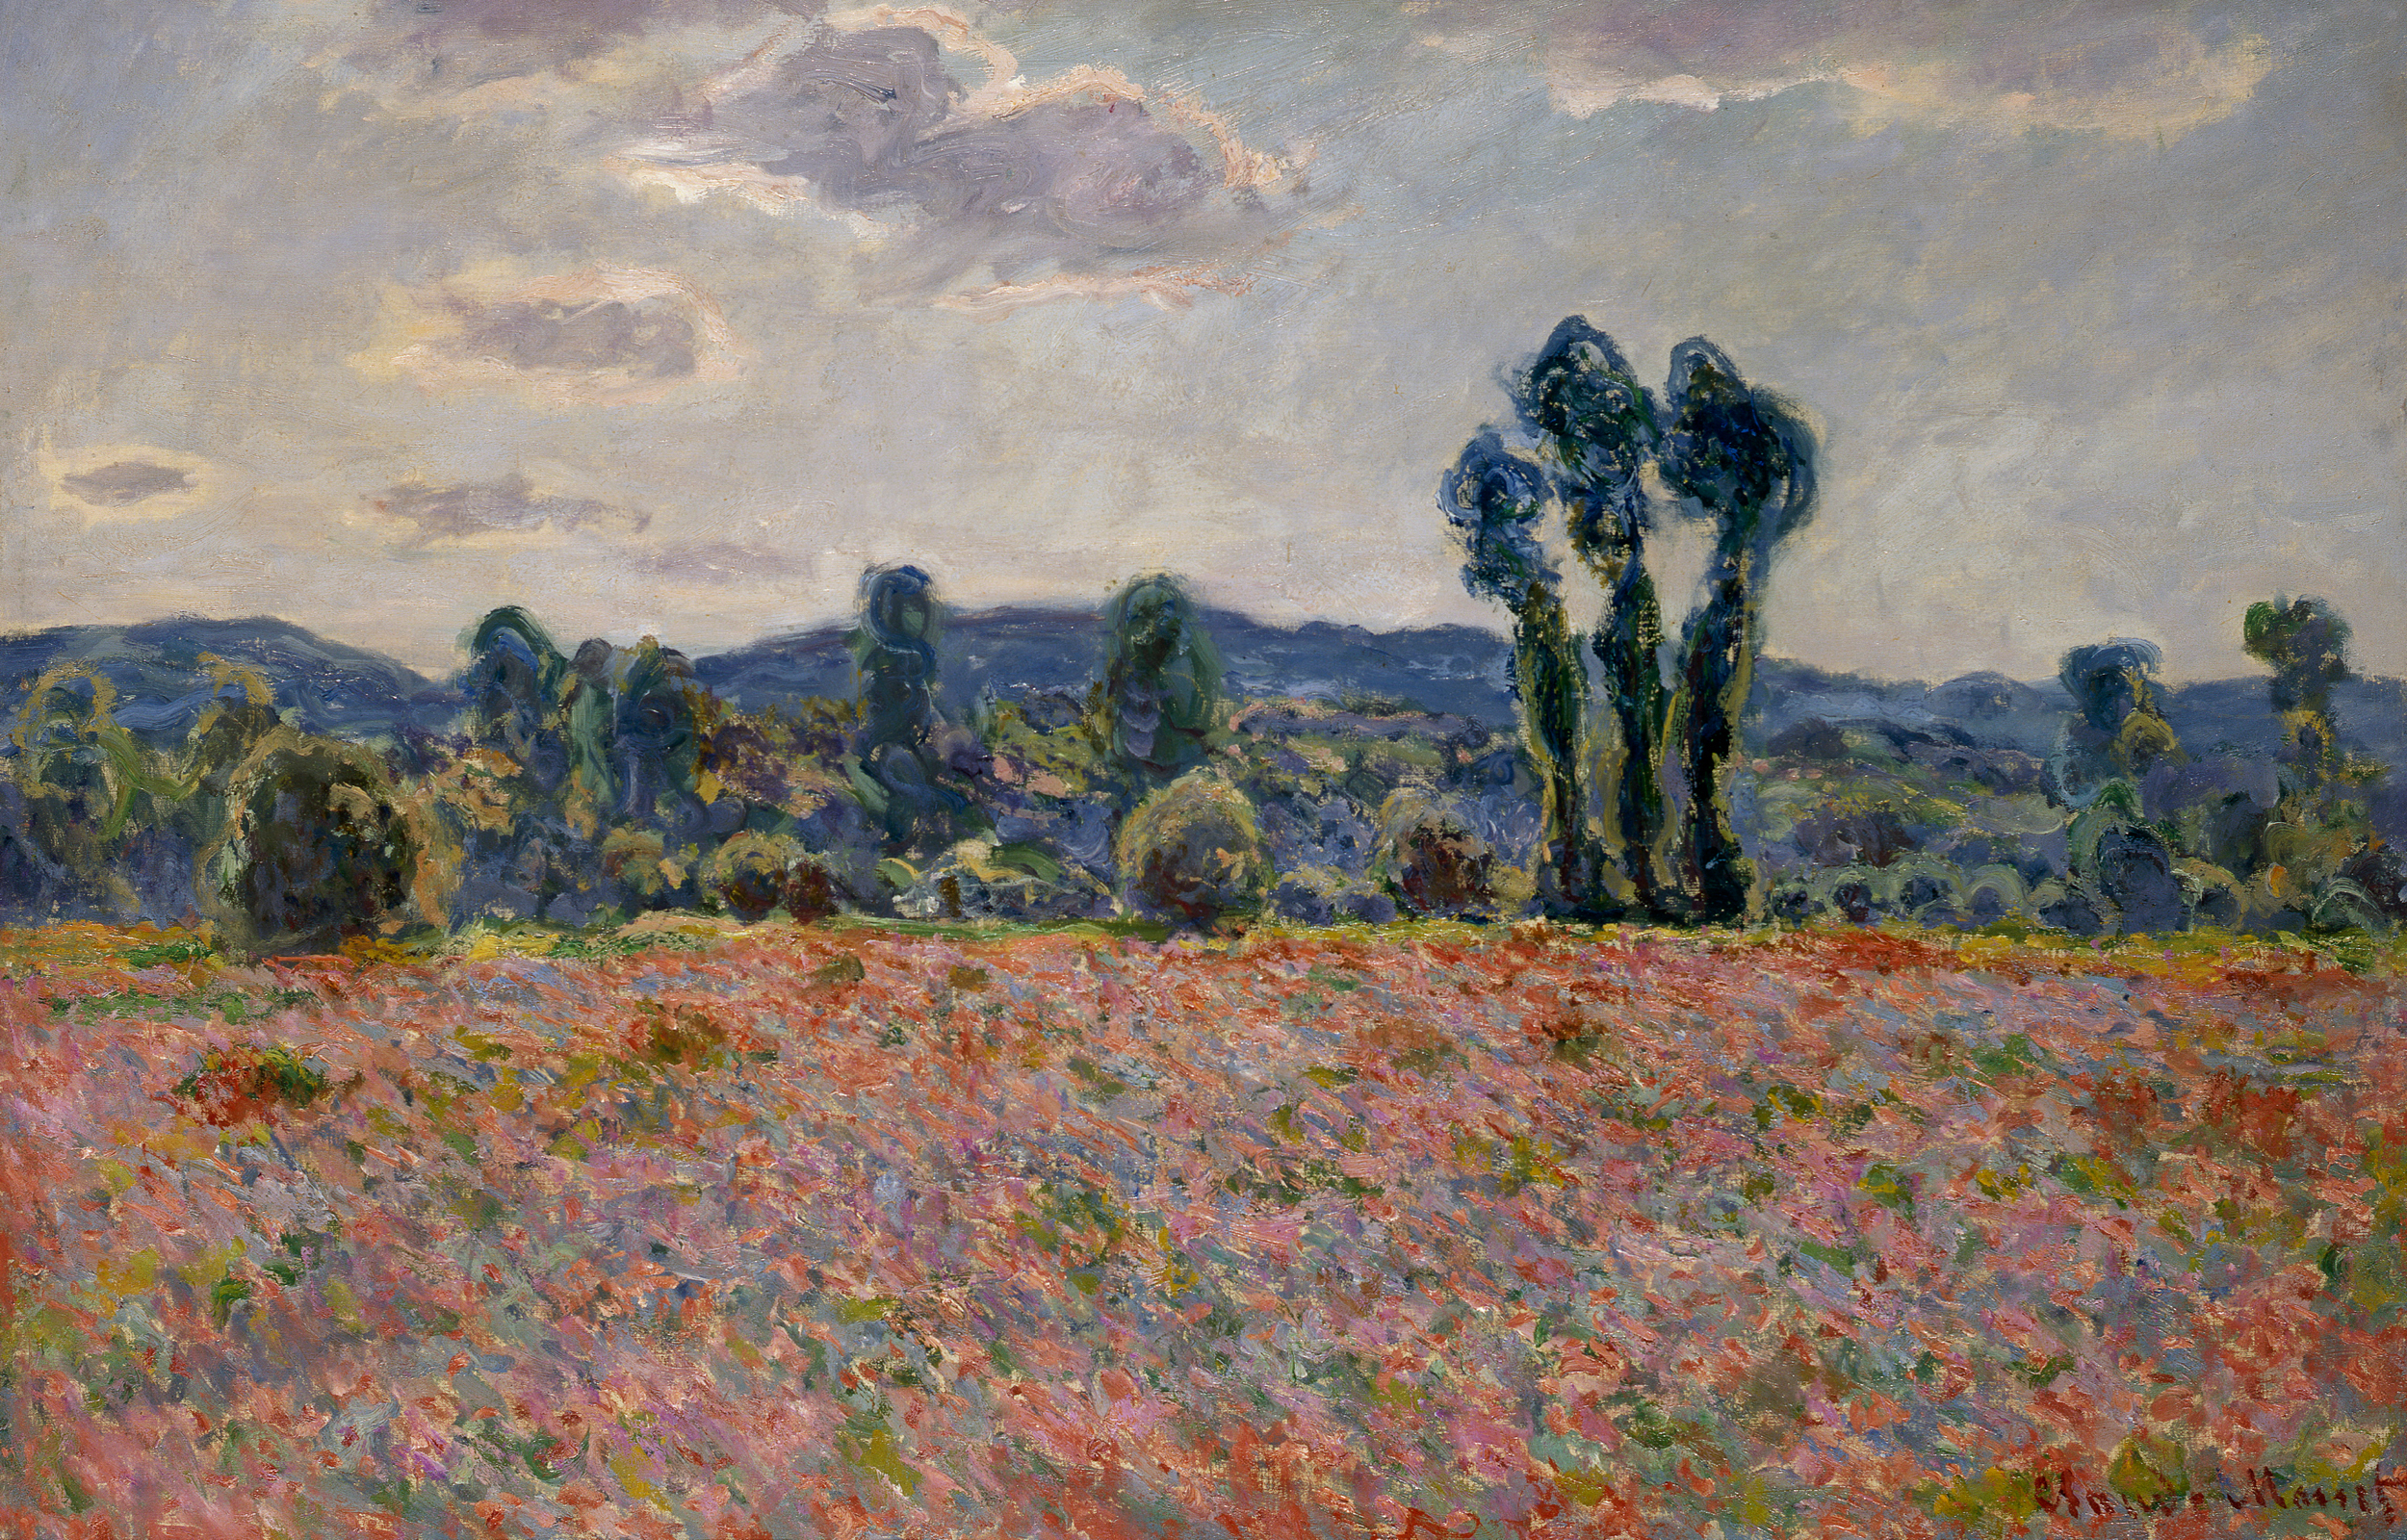 Modern masters from the Hermitage 2018 AGNSW Monet